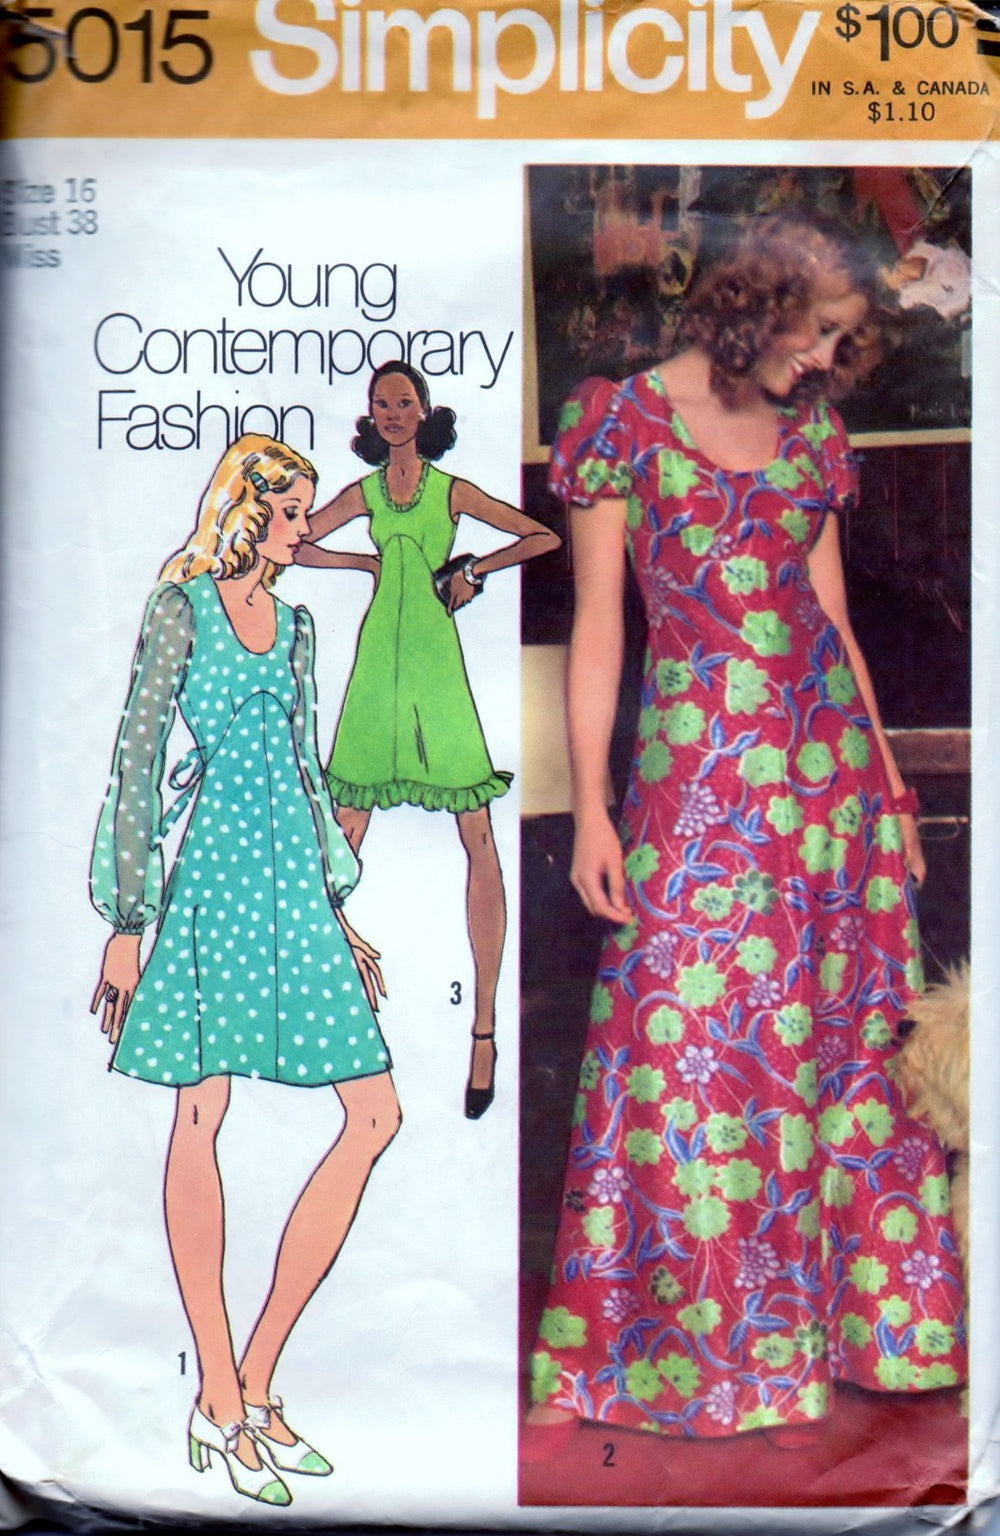 Simplicity 5015 Ladies Mini or Long Dress Young Contemporary Fashion Vintage 1970's Sewing Pattern - VintageStitching - Vintage Sewing Patterns